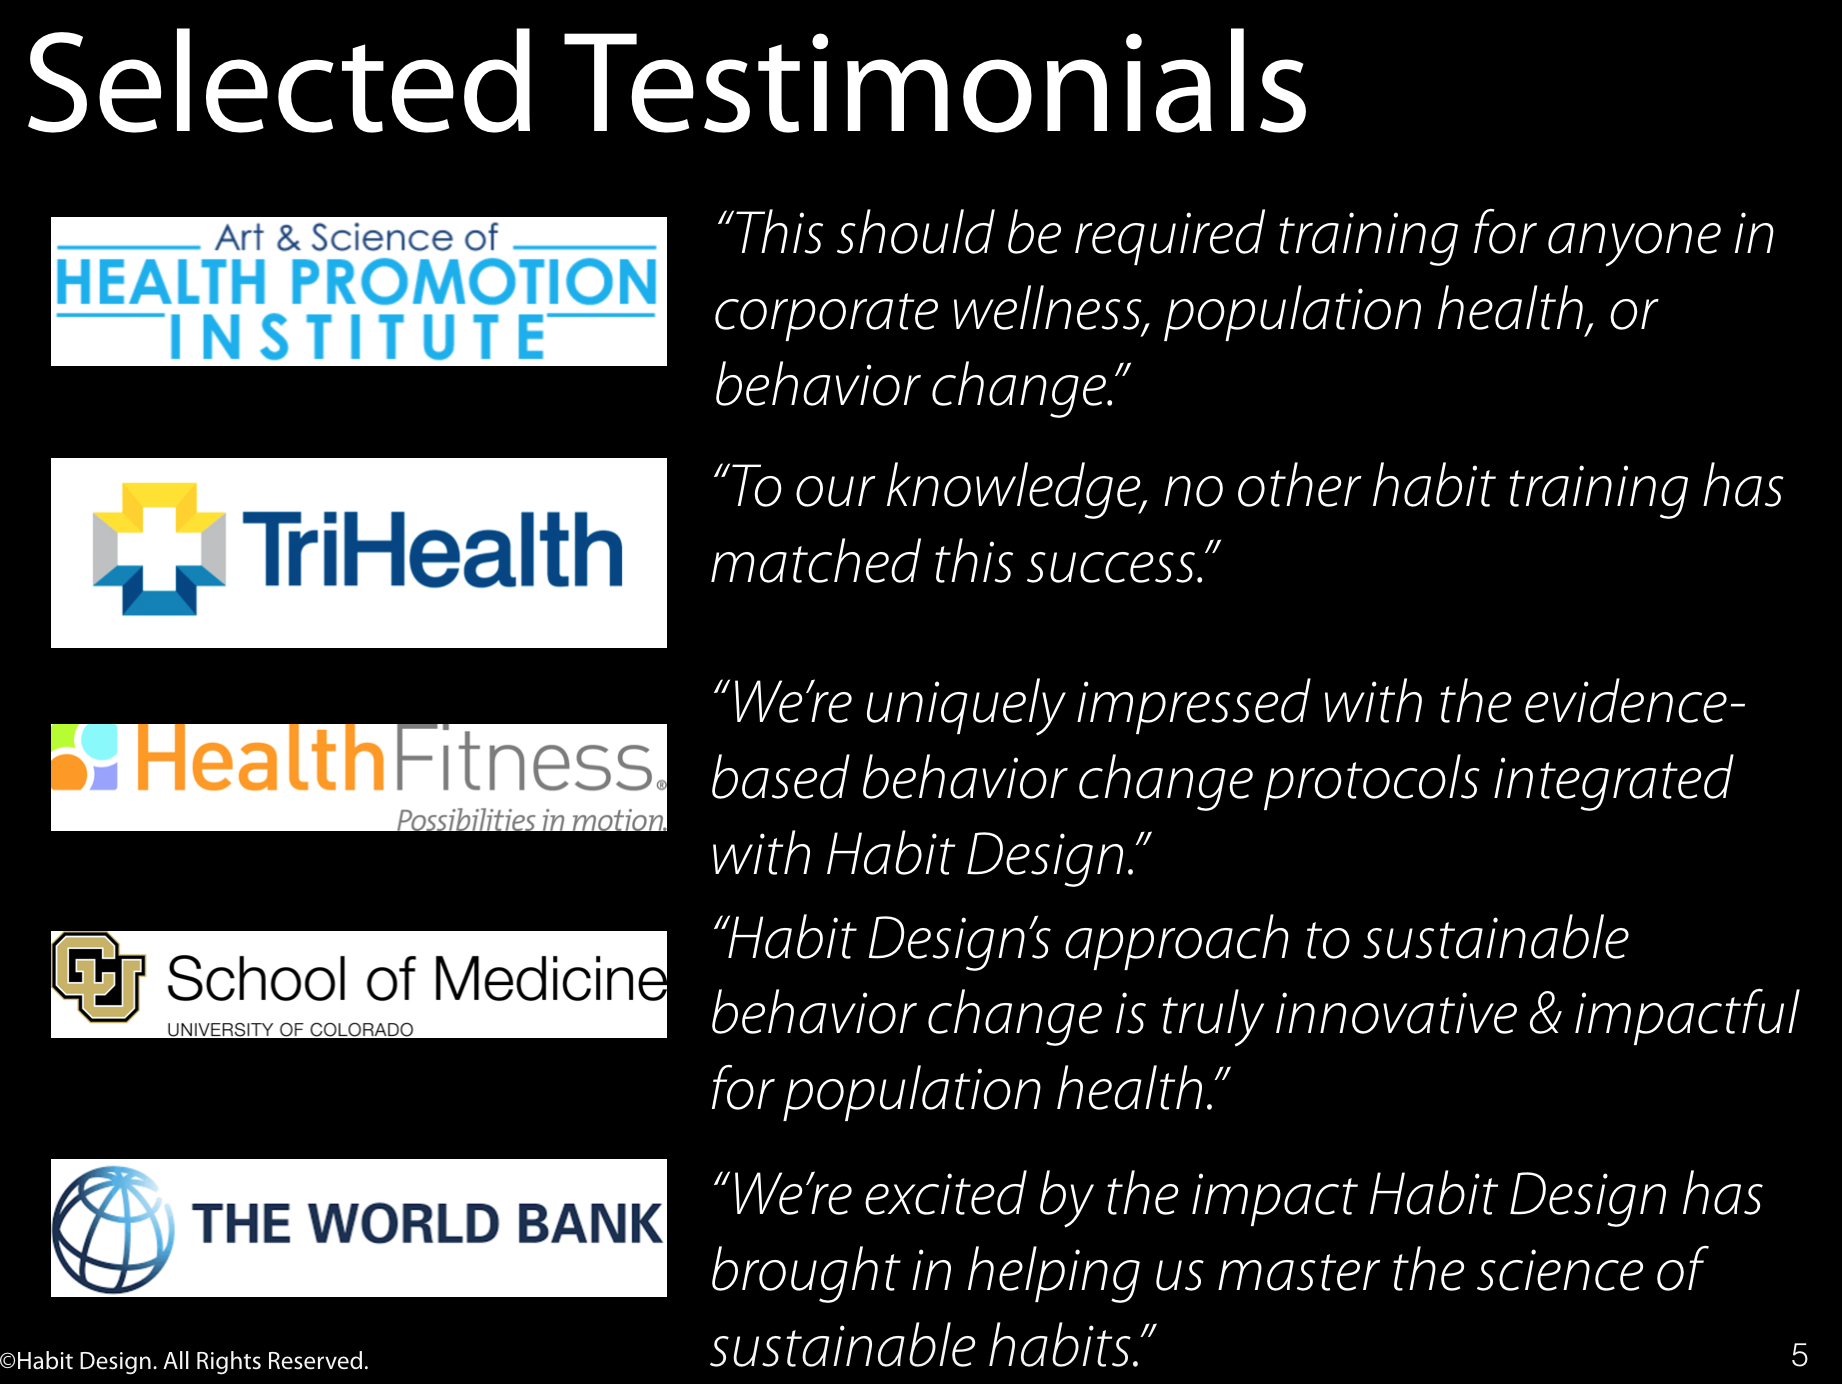 Selected Testimonials